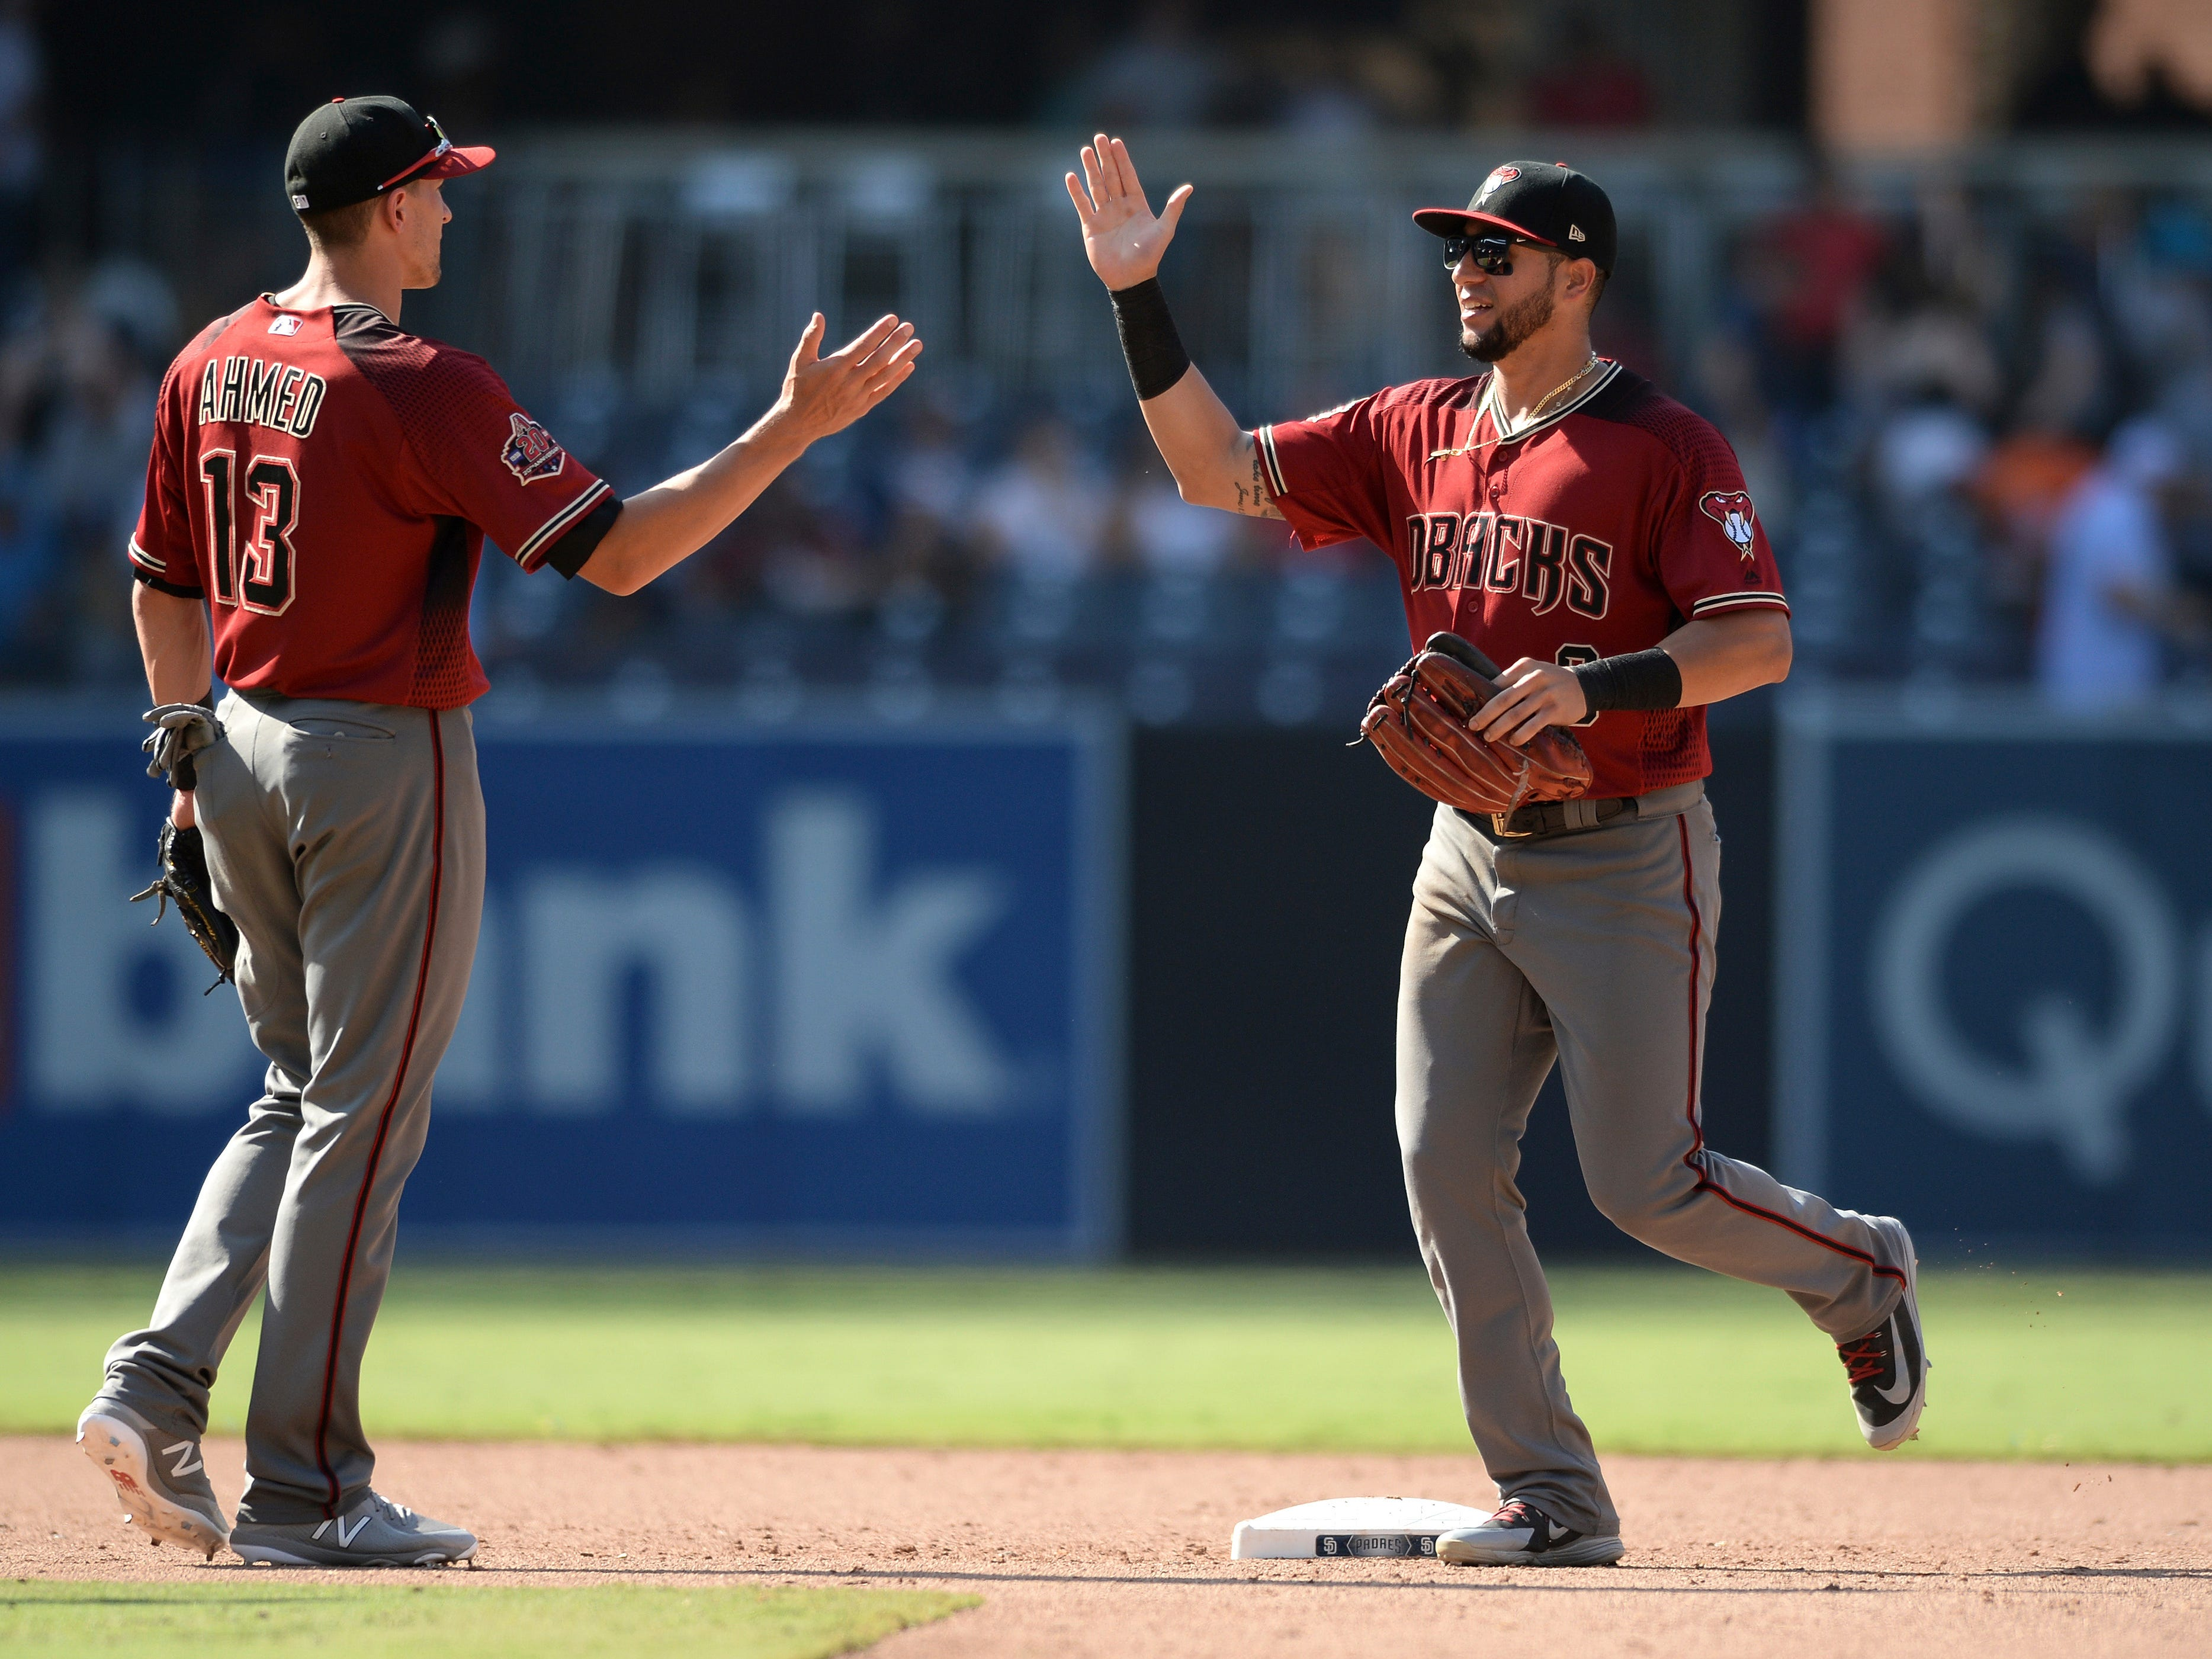 Arizona Diamondbacks' Nick Ahmed, left, and David Peralta celebrate after recording the last out of the baseball game against the San Diego Padres, Sunday, Aug. 19, 2018, in San Diego. (AP Photo/Orlando Ramirez)